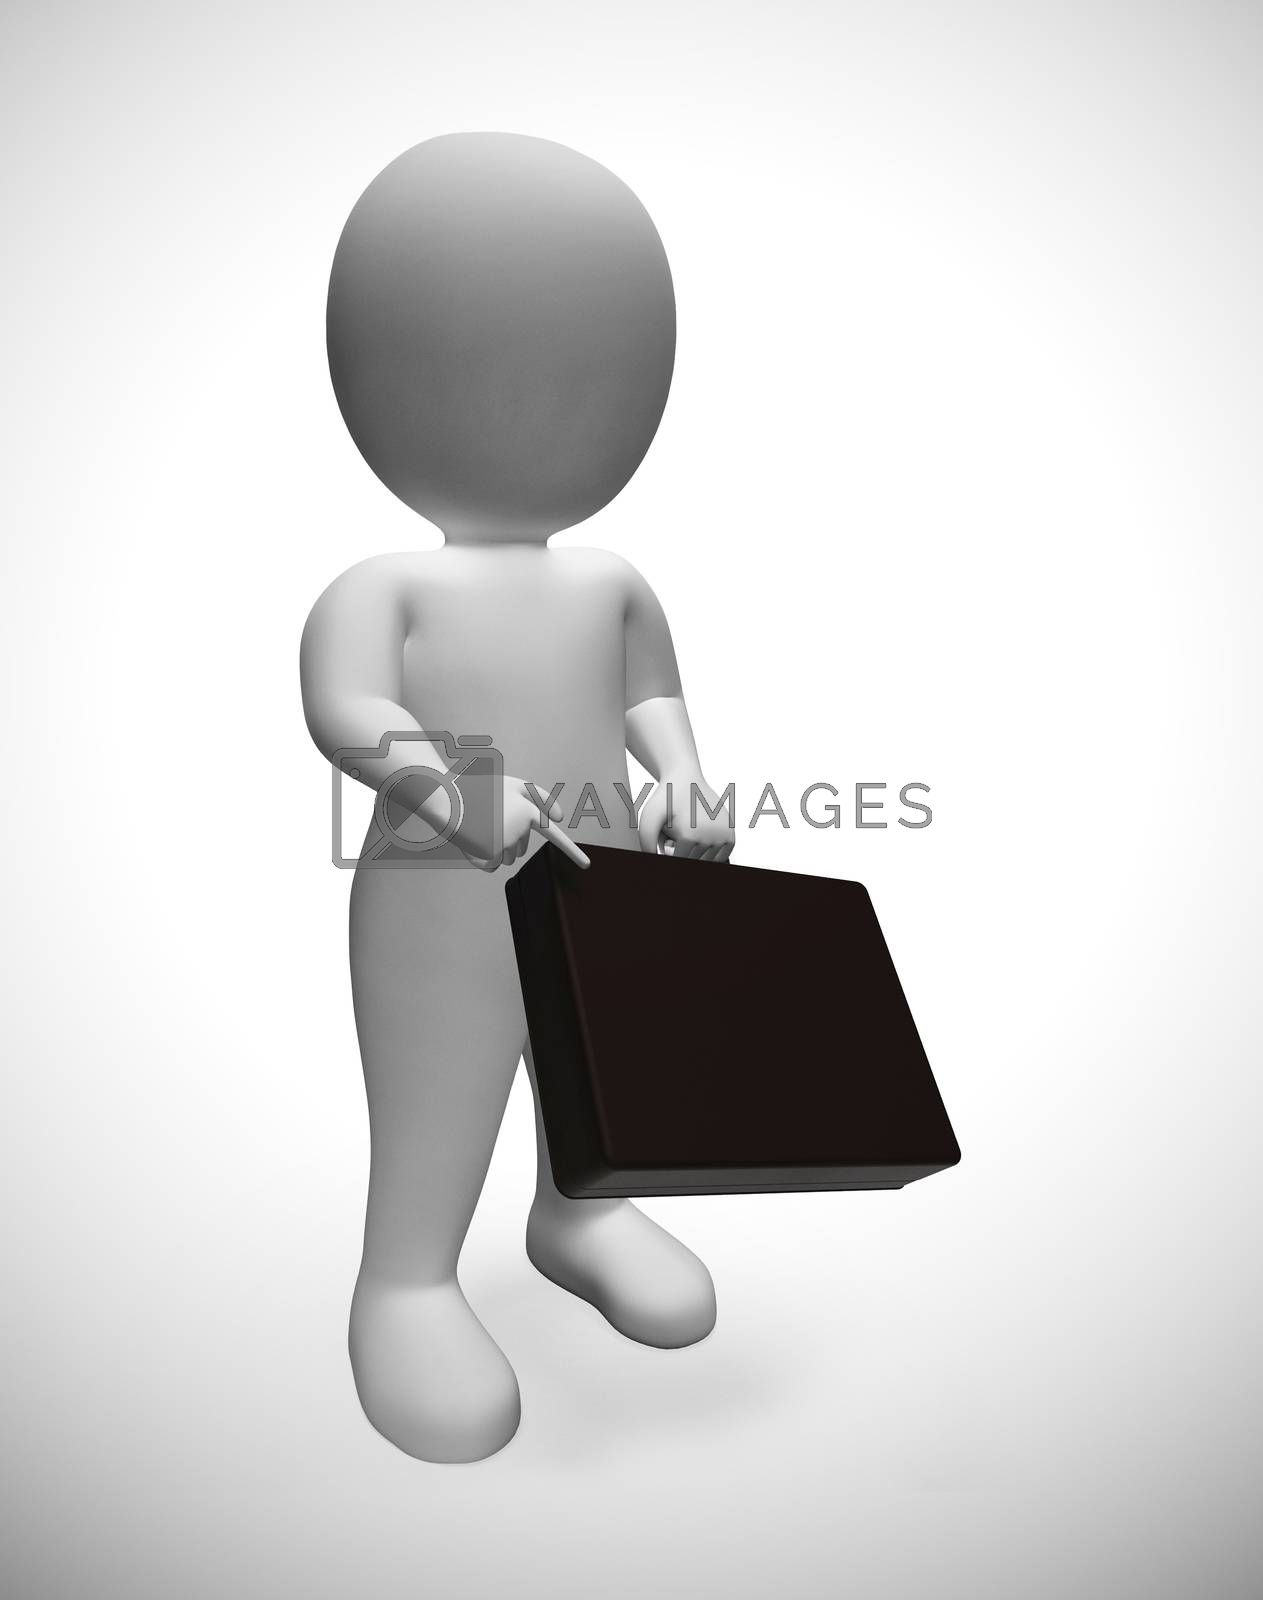 Businessman with briefcase character depicts an entrepreneur or salesman.  A professional executive with a career in the city - 3d illustration